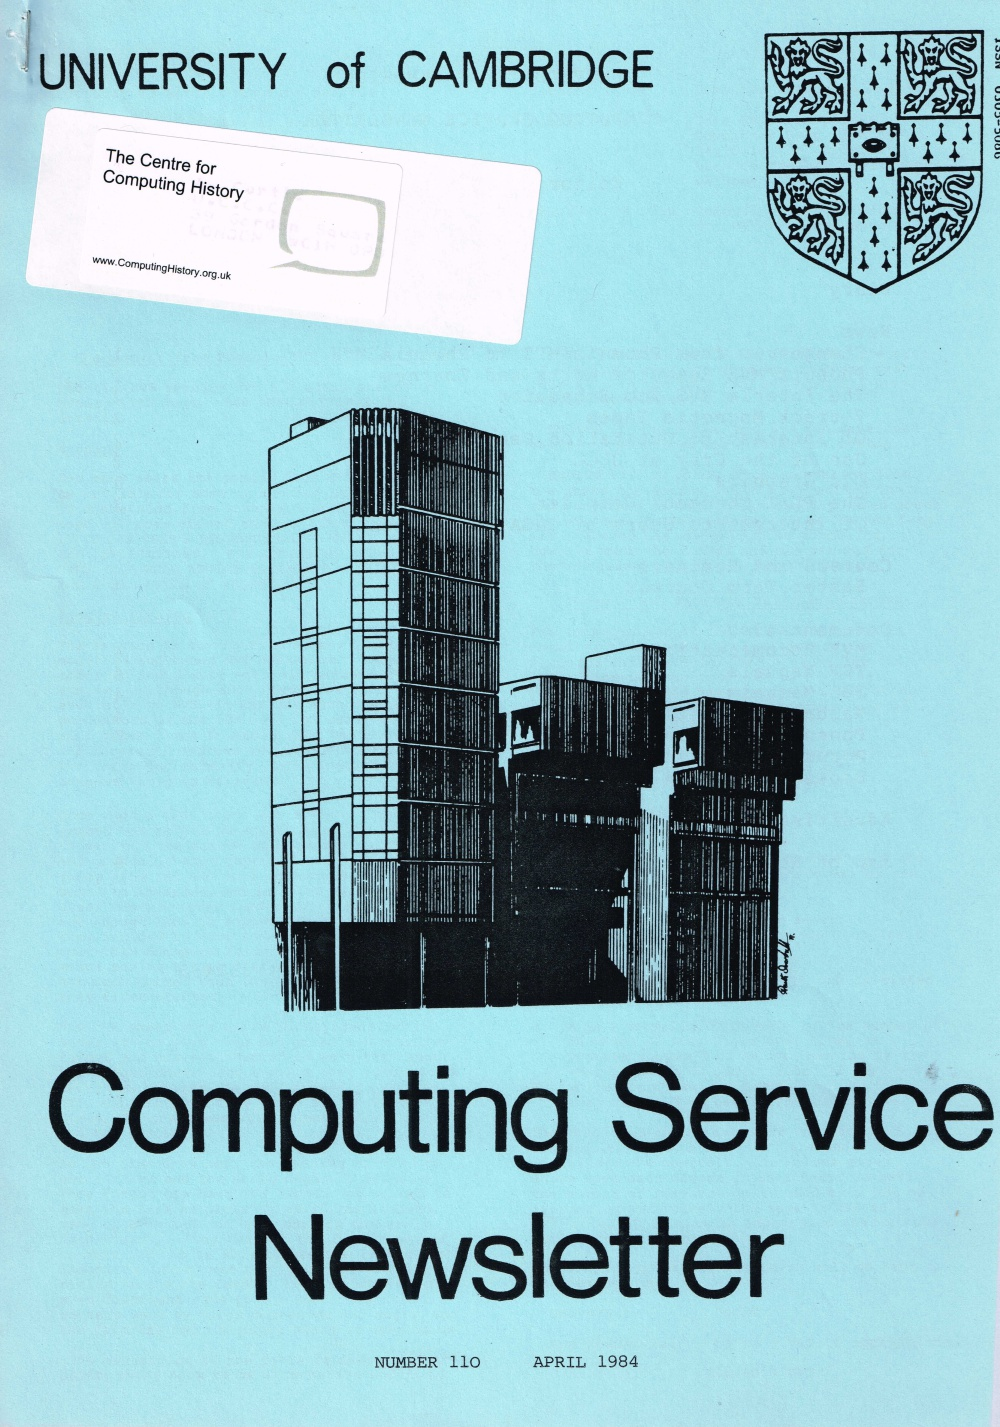 Article: University of Cambridge Computing Service April 1984 Newsletter 110